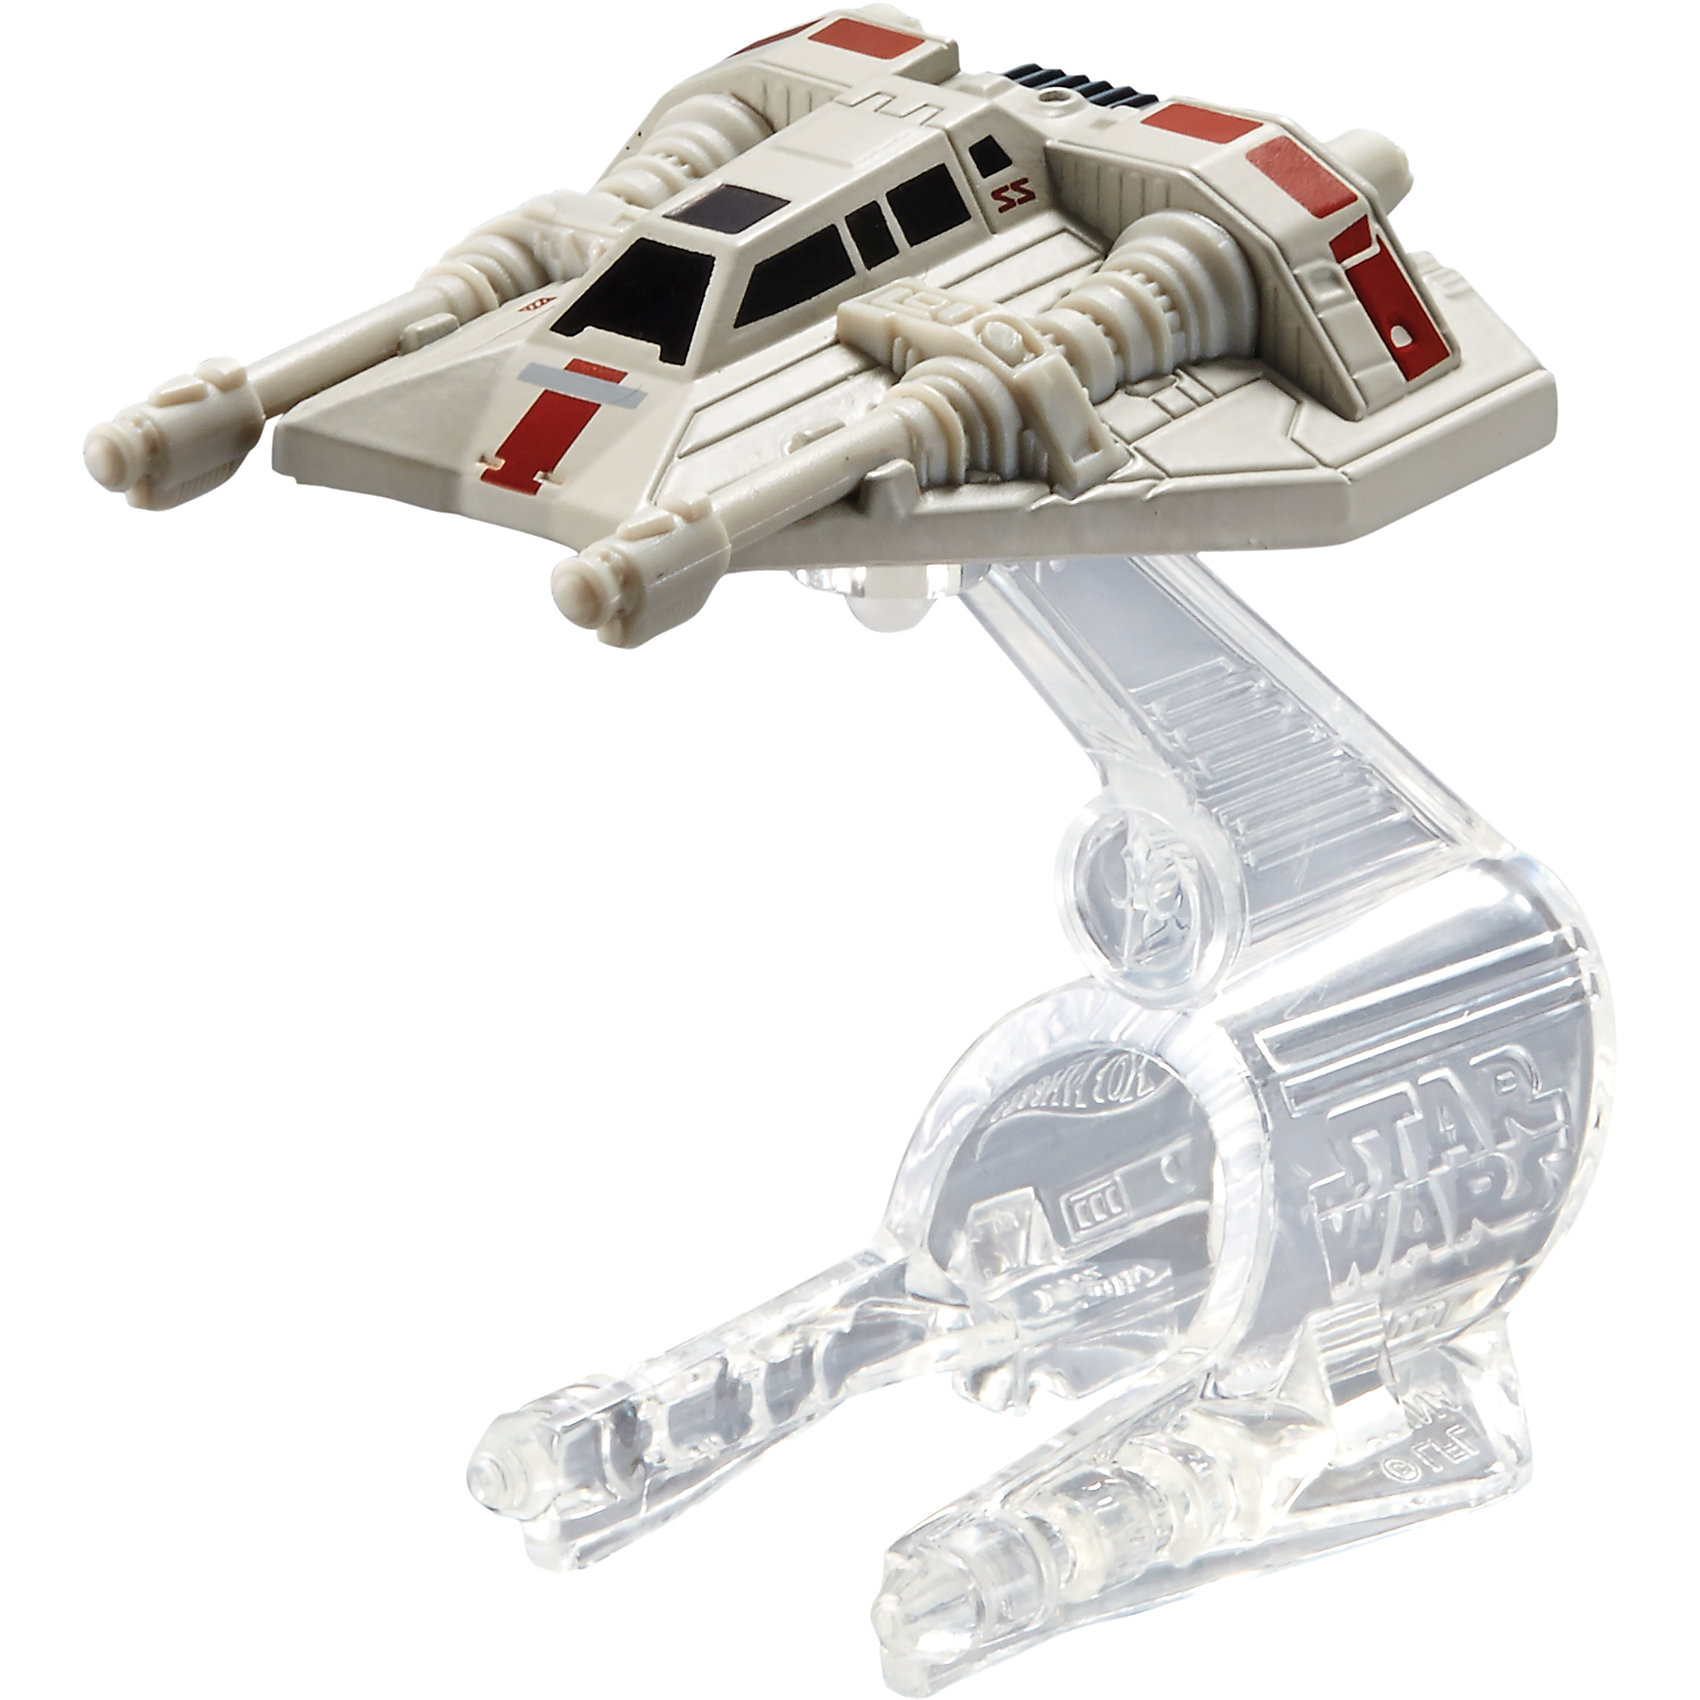 Mattel Звездный корабль Star Wars, Hot Wheels hot wheels звездный корабль command shuttle star wars hot wheels